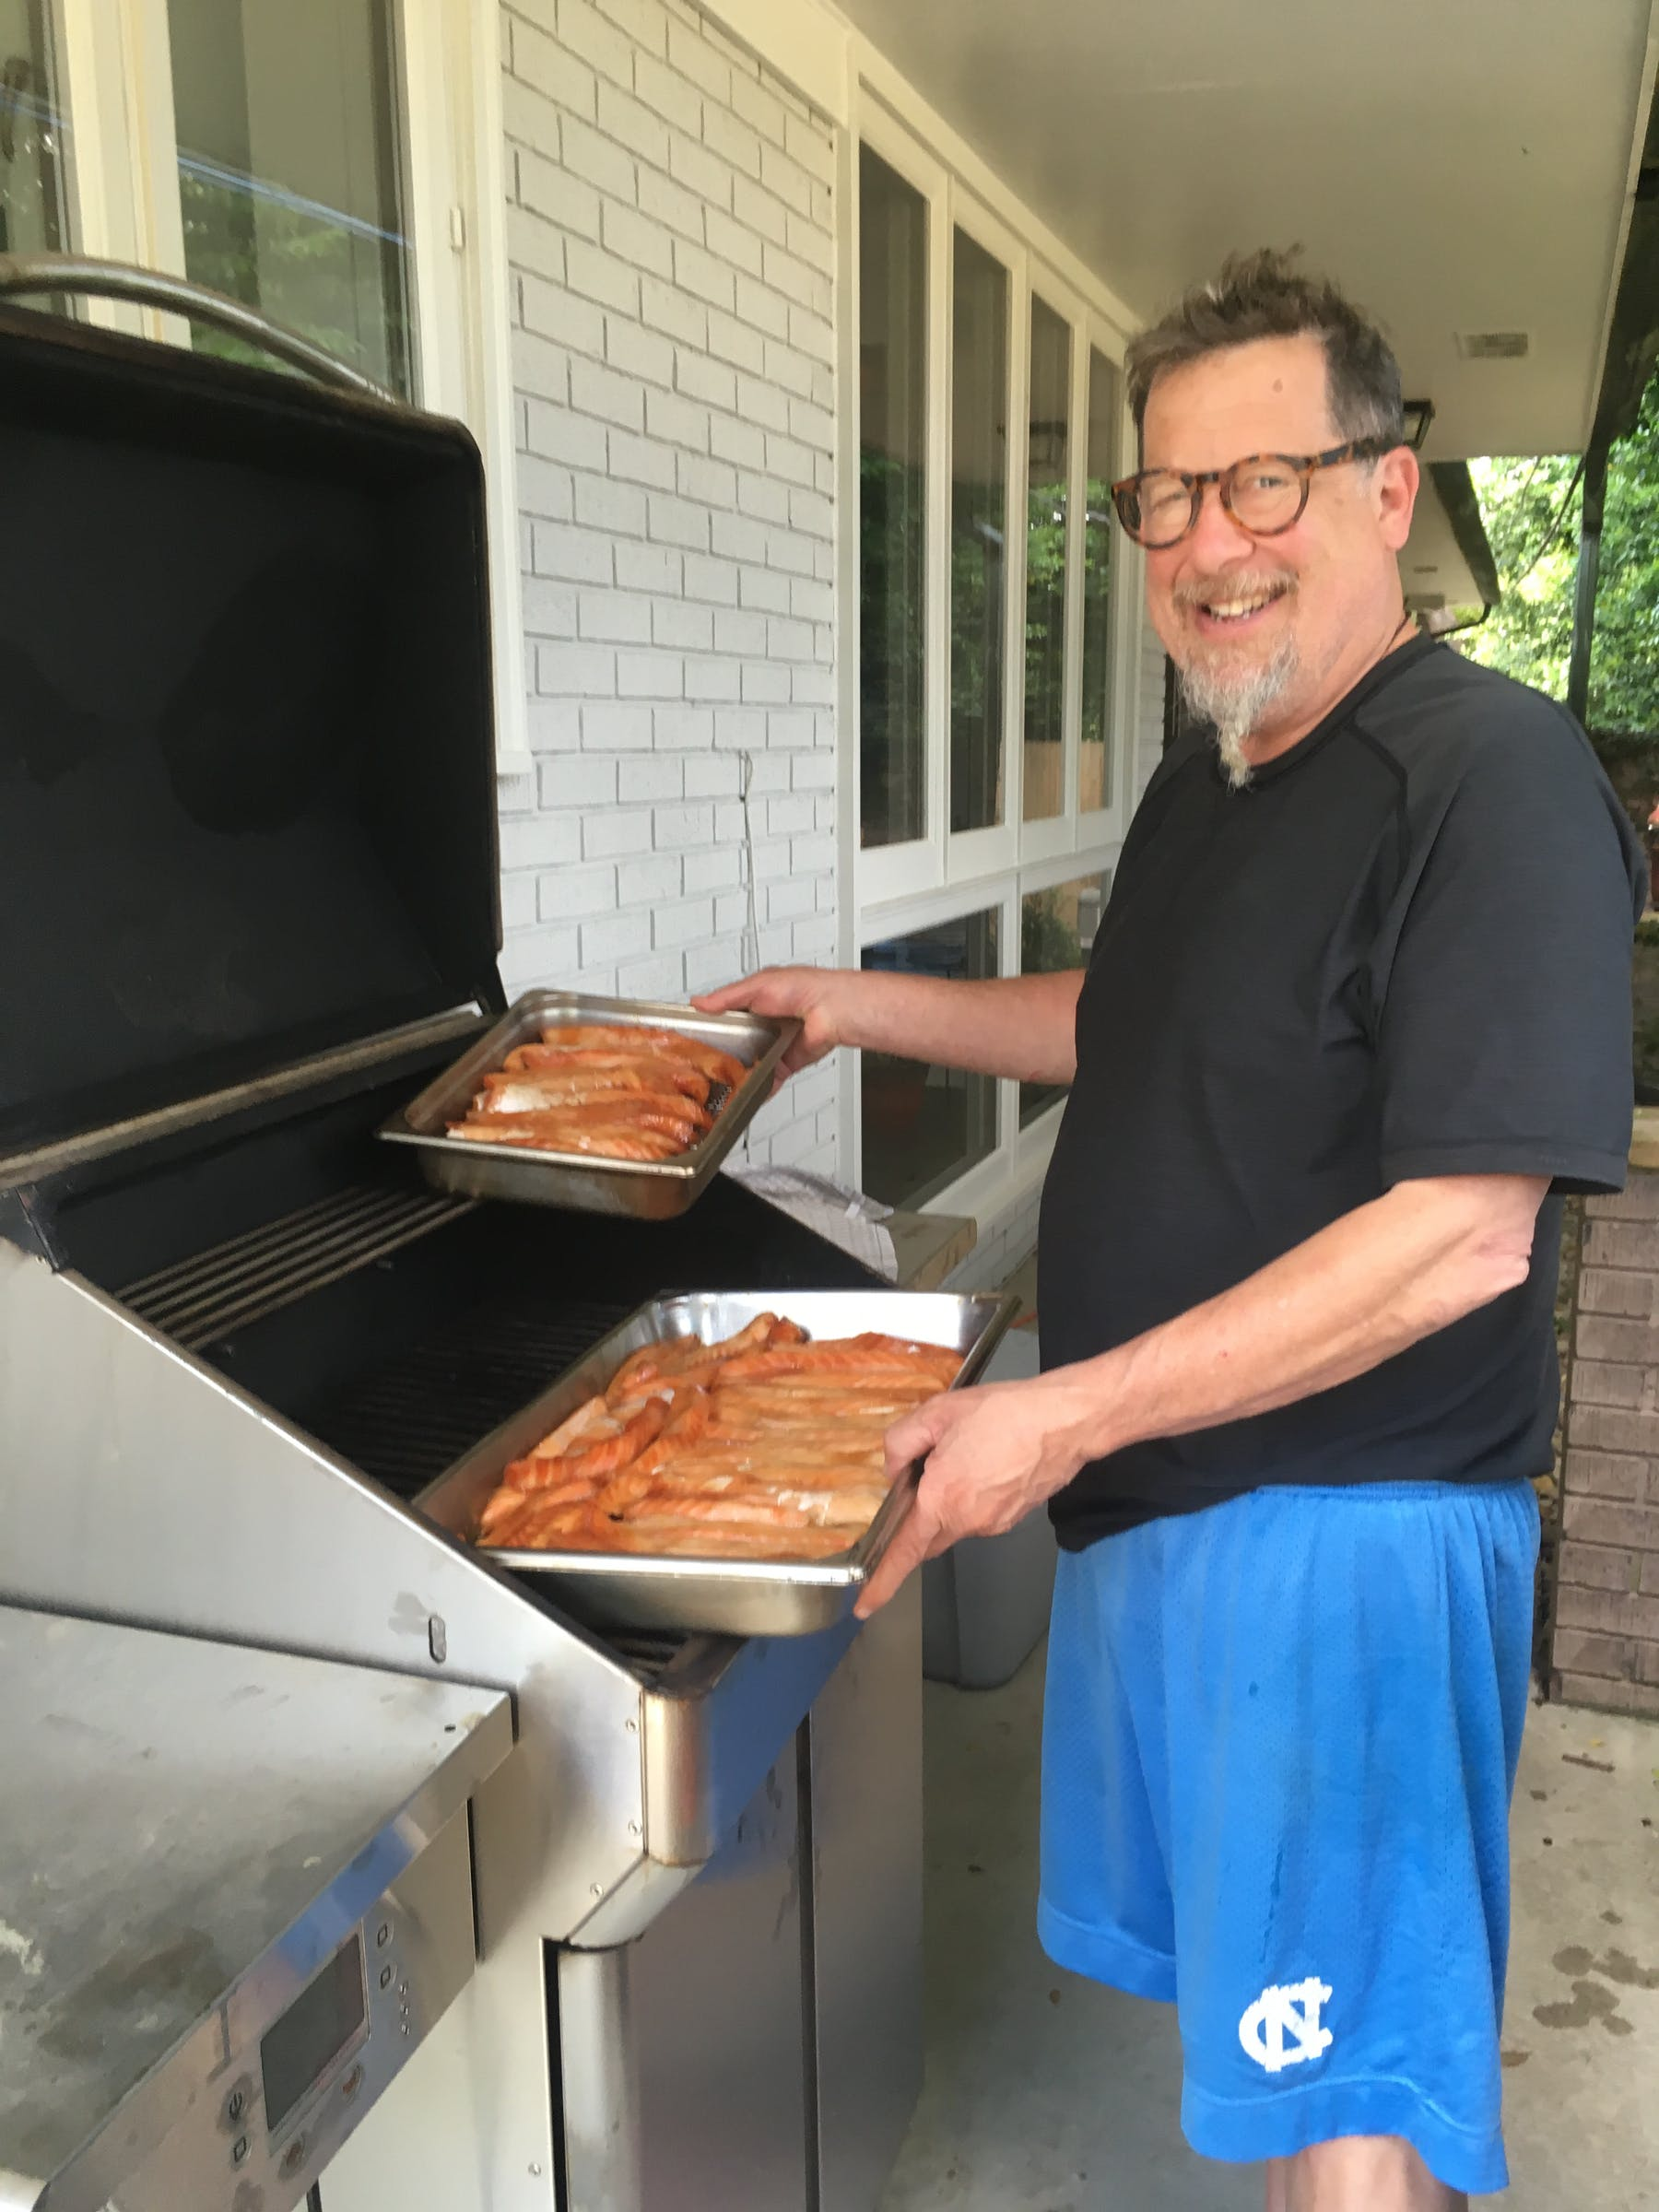 a man holding a pizza on a grill